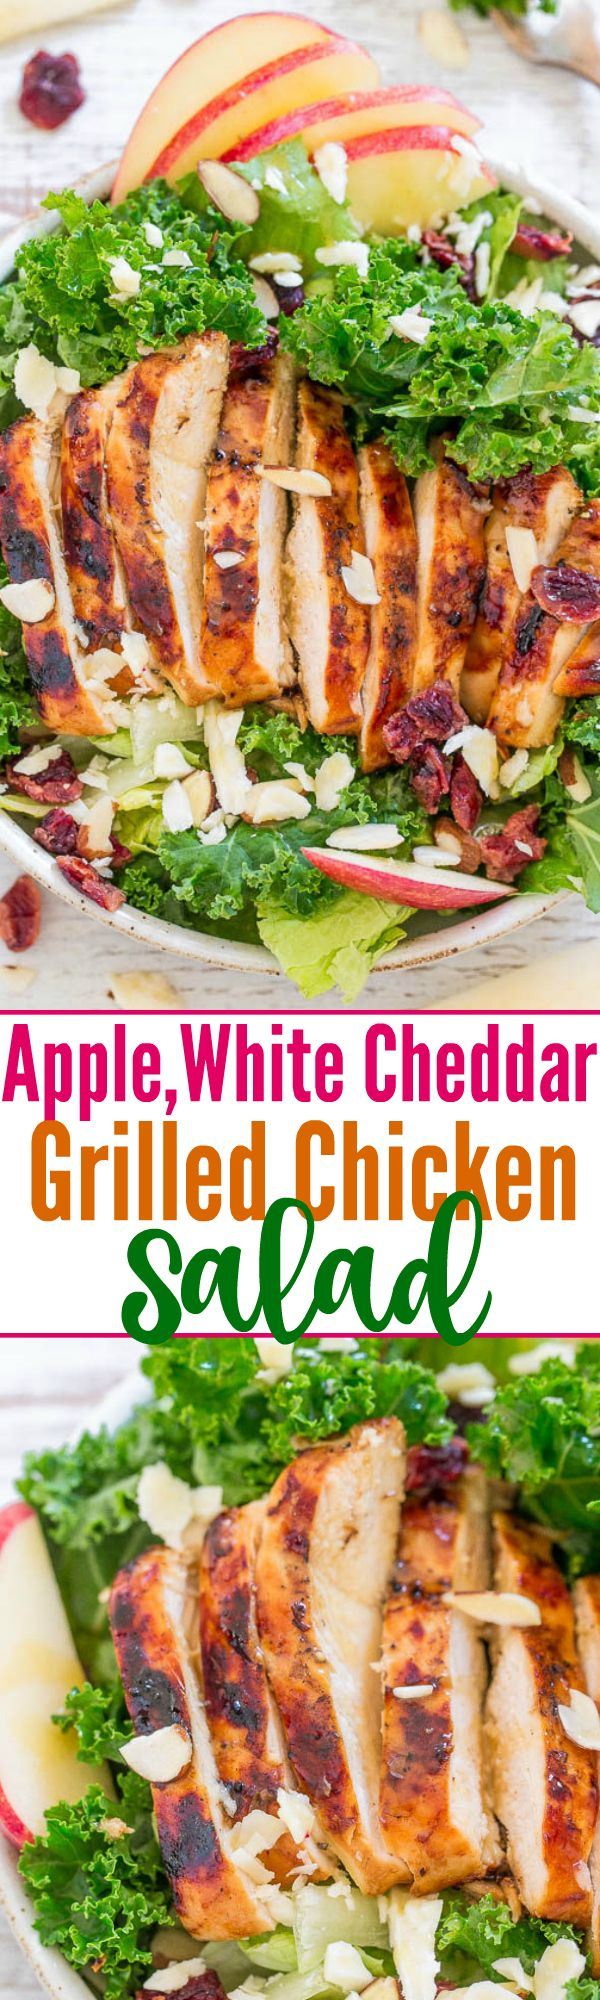 Apple, White Cheddar, and Grilled Chicken Salad - Averie Cooks